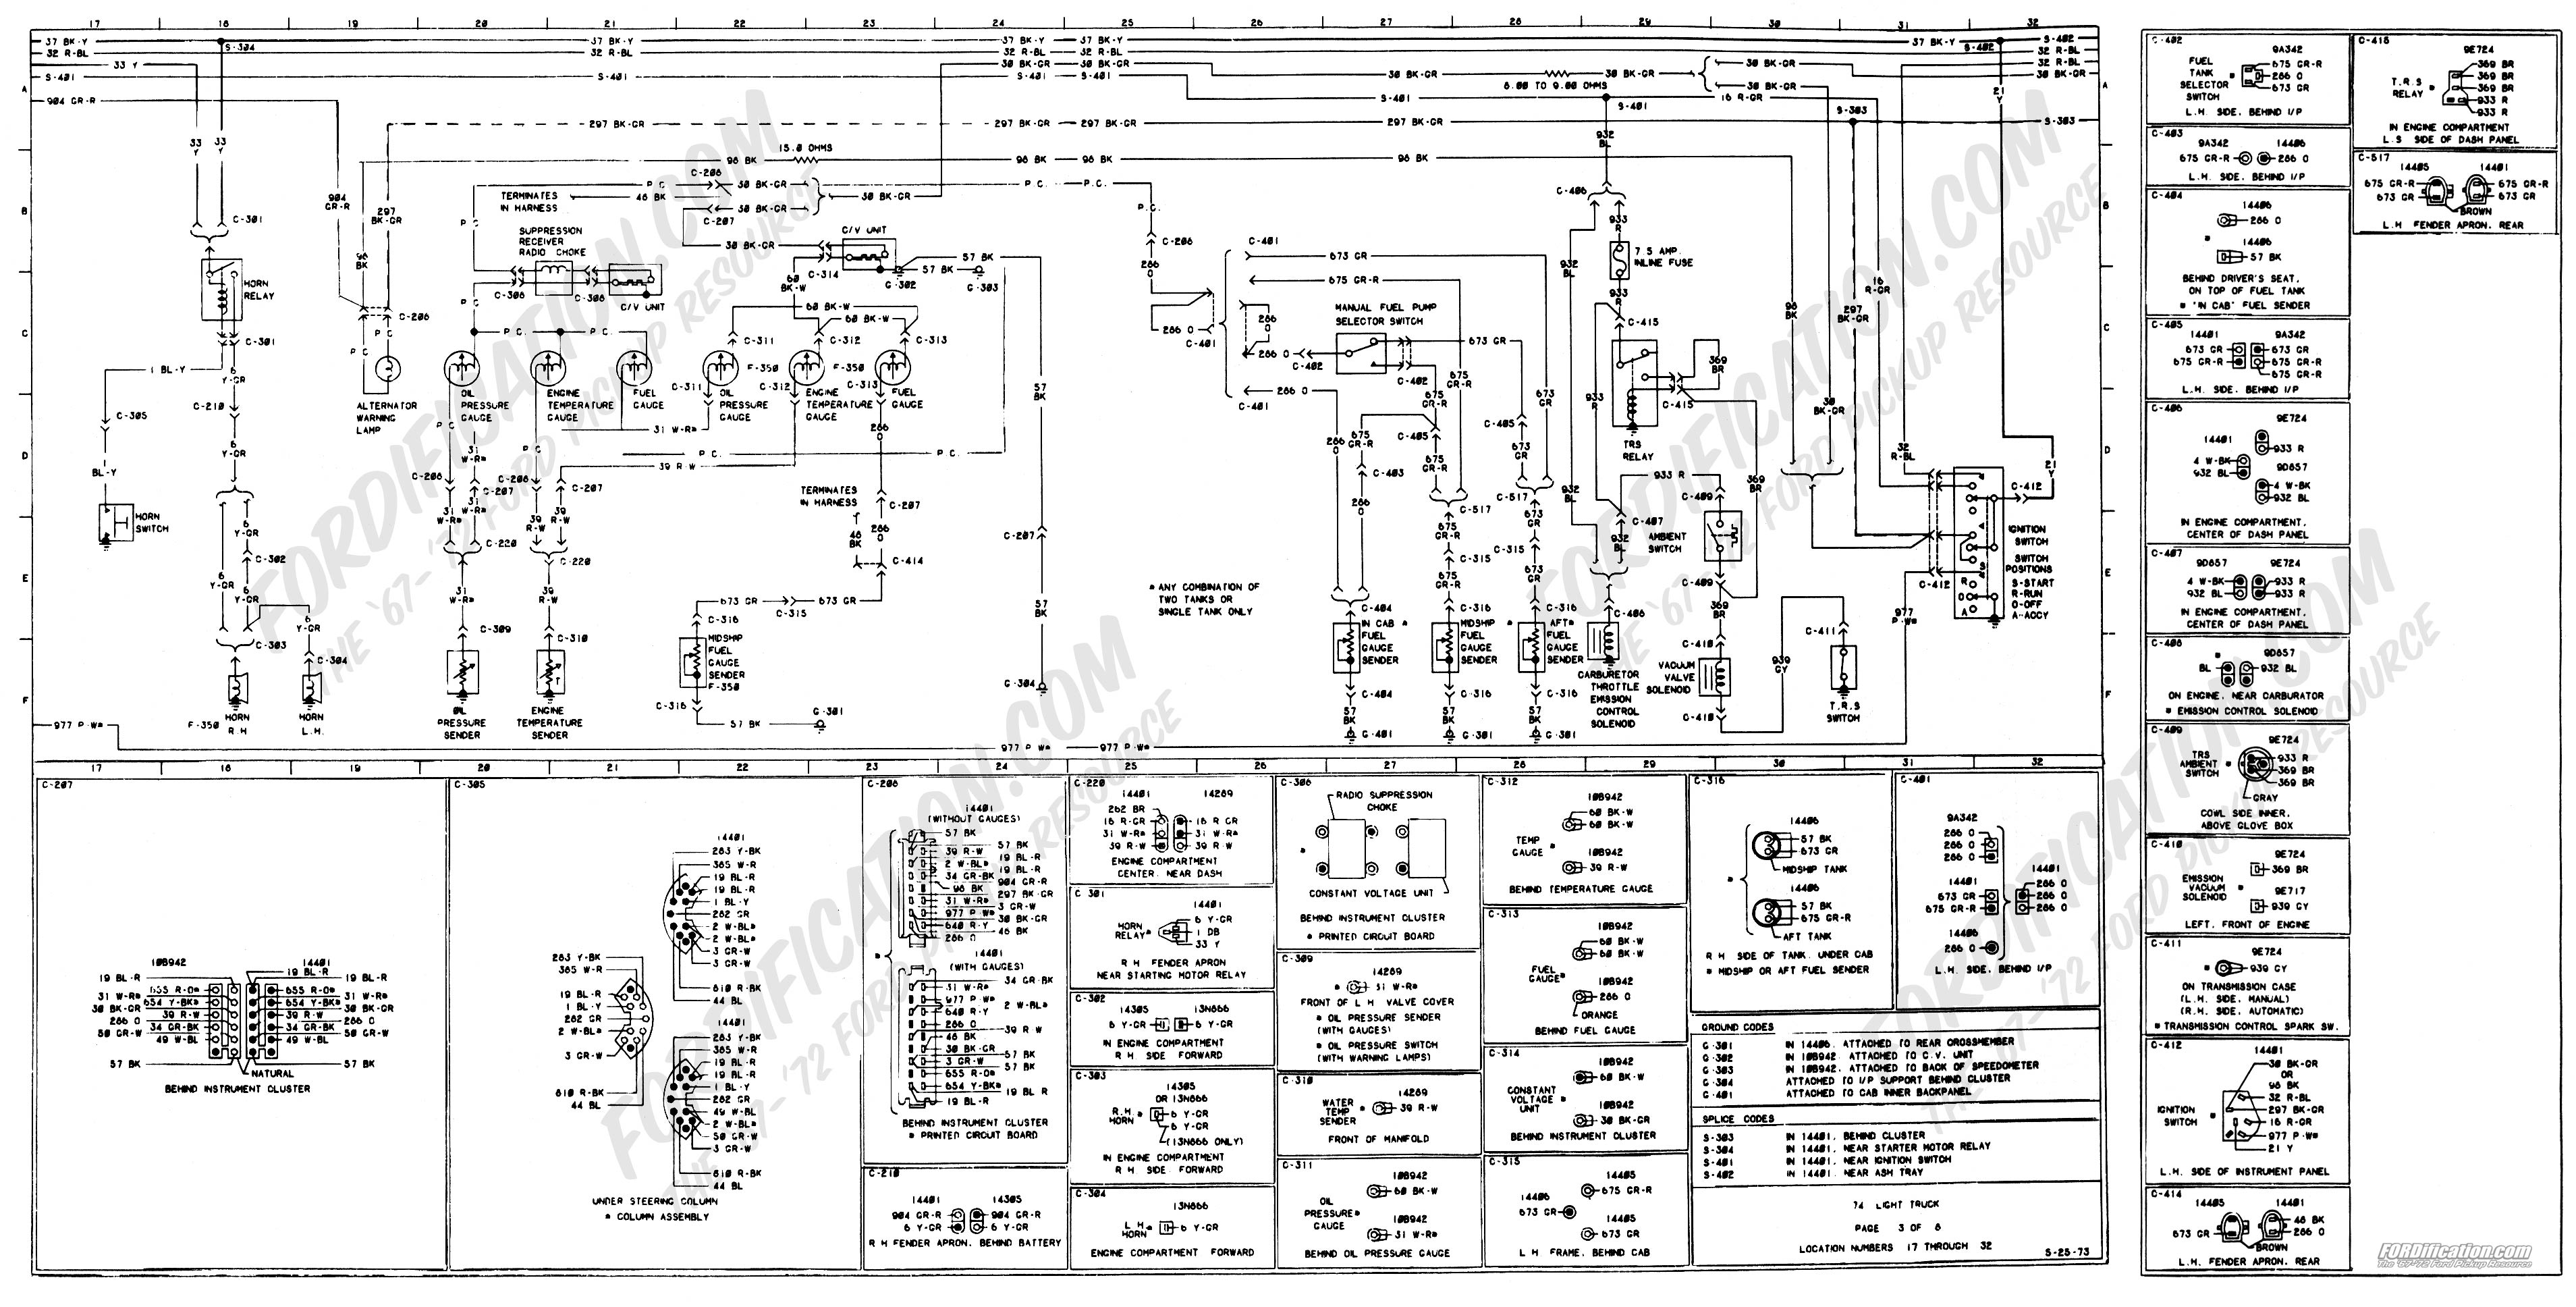 wiring_74master_3of8 1973 1979 ford truck wiring diagrams & schematics fordification net 73 ford f250 wiring diagram at nearapp.co